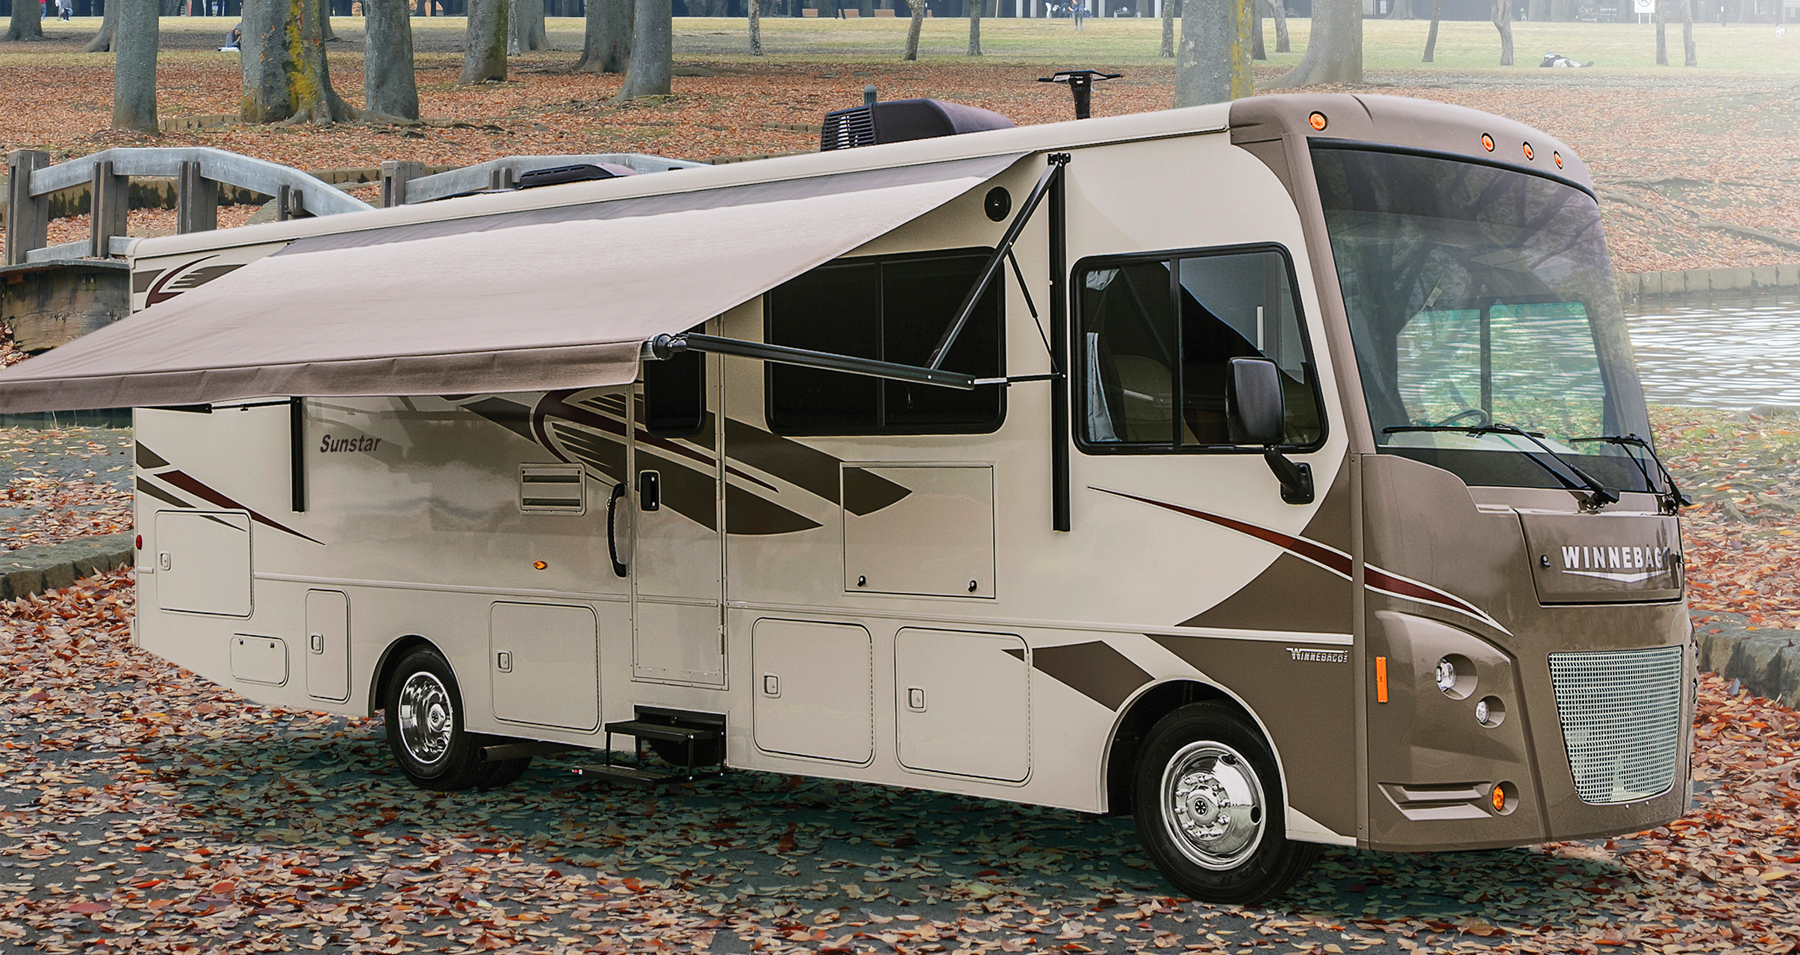 Winnebago Sunstar